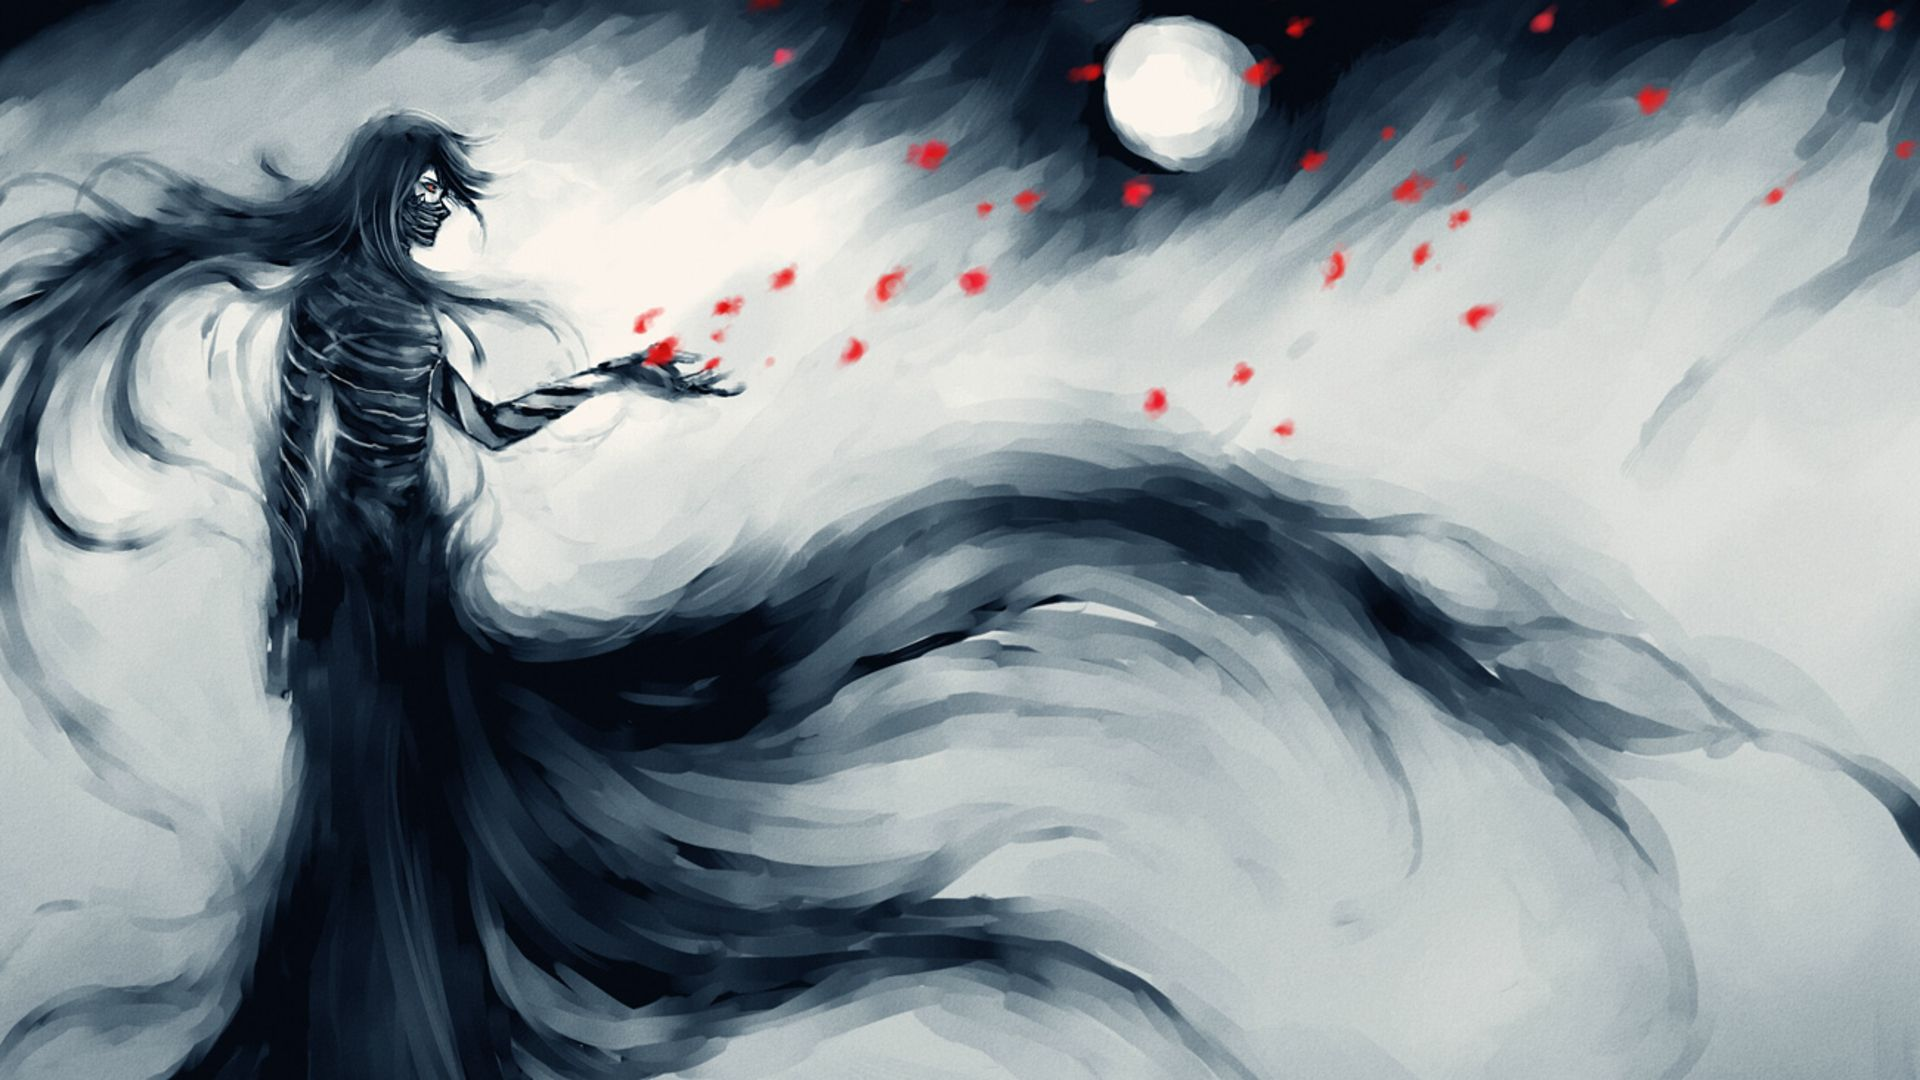 Mugetsu WallPaper HD